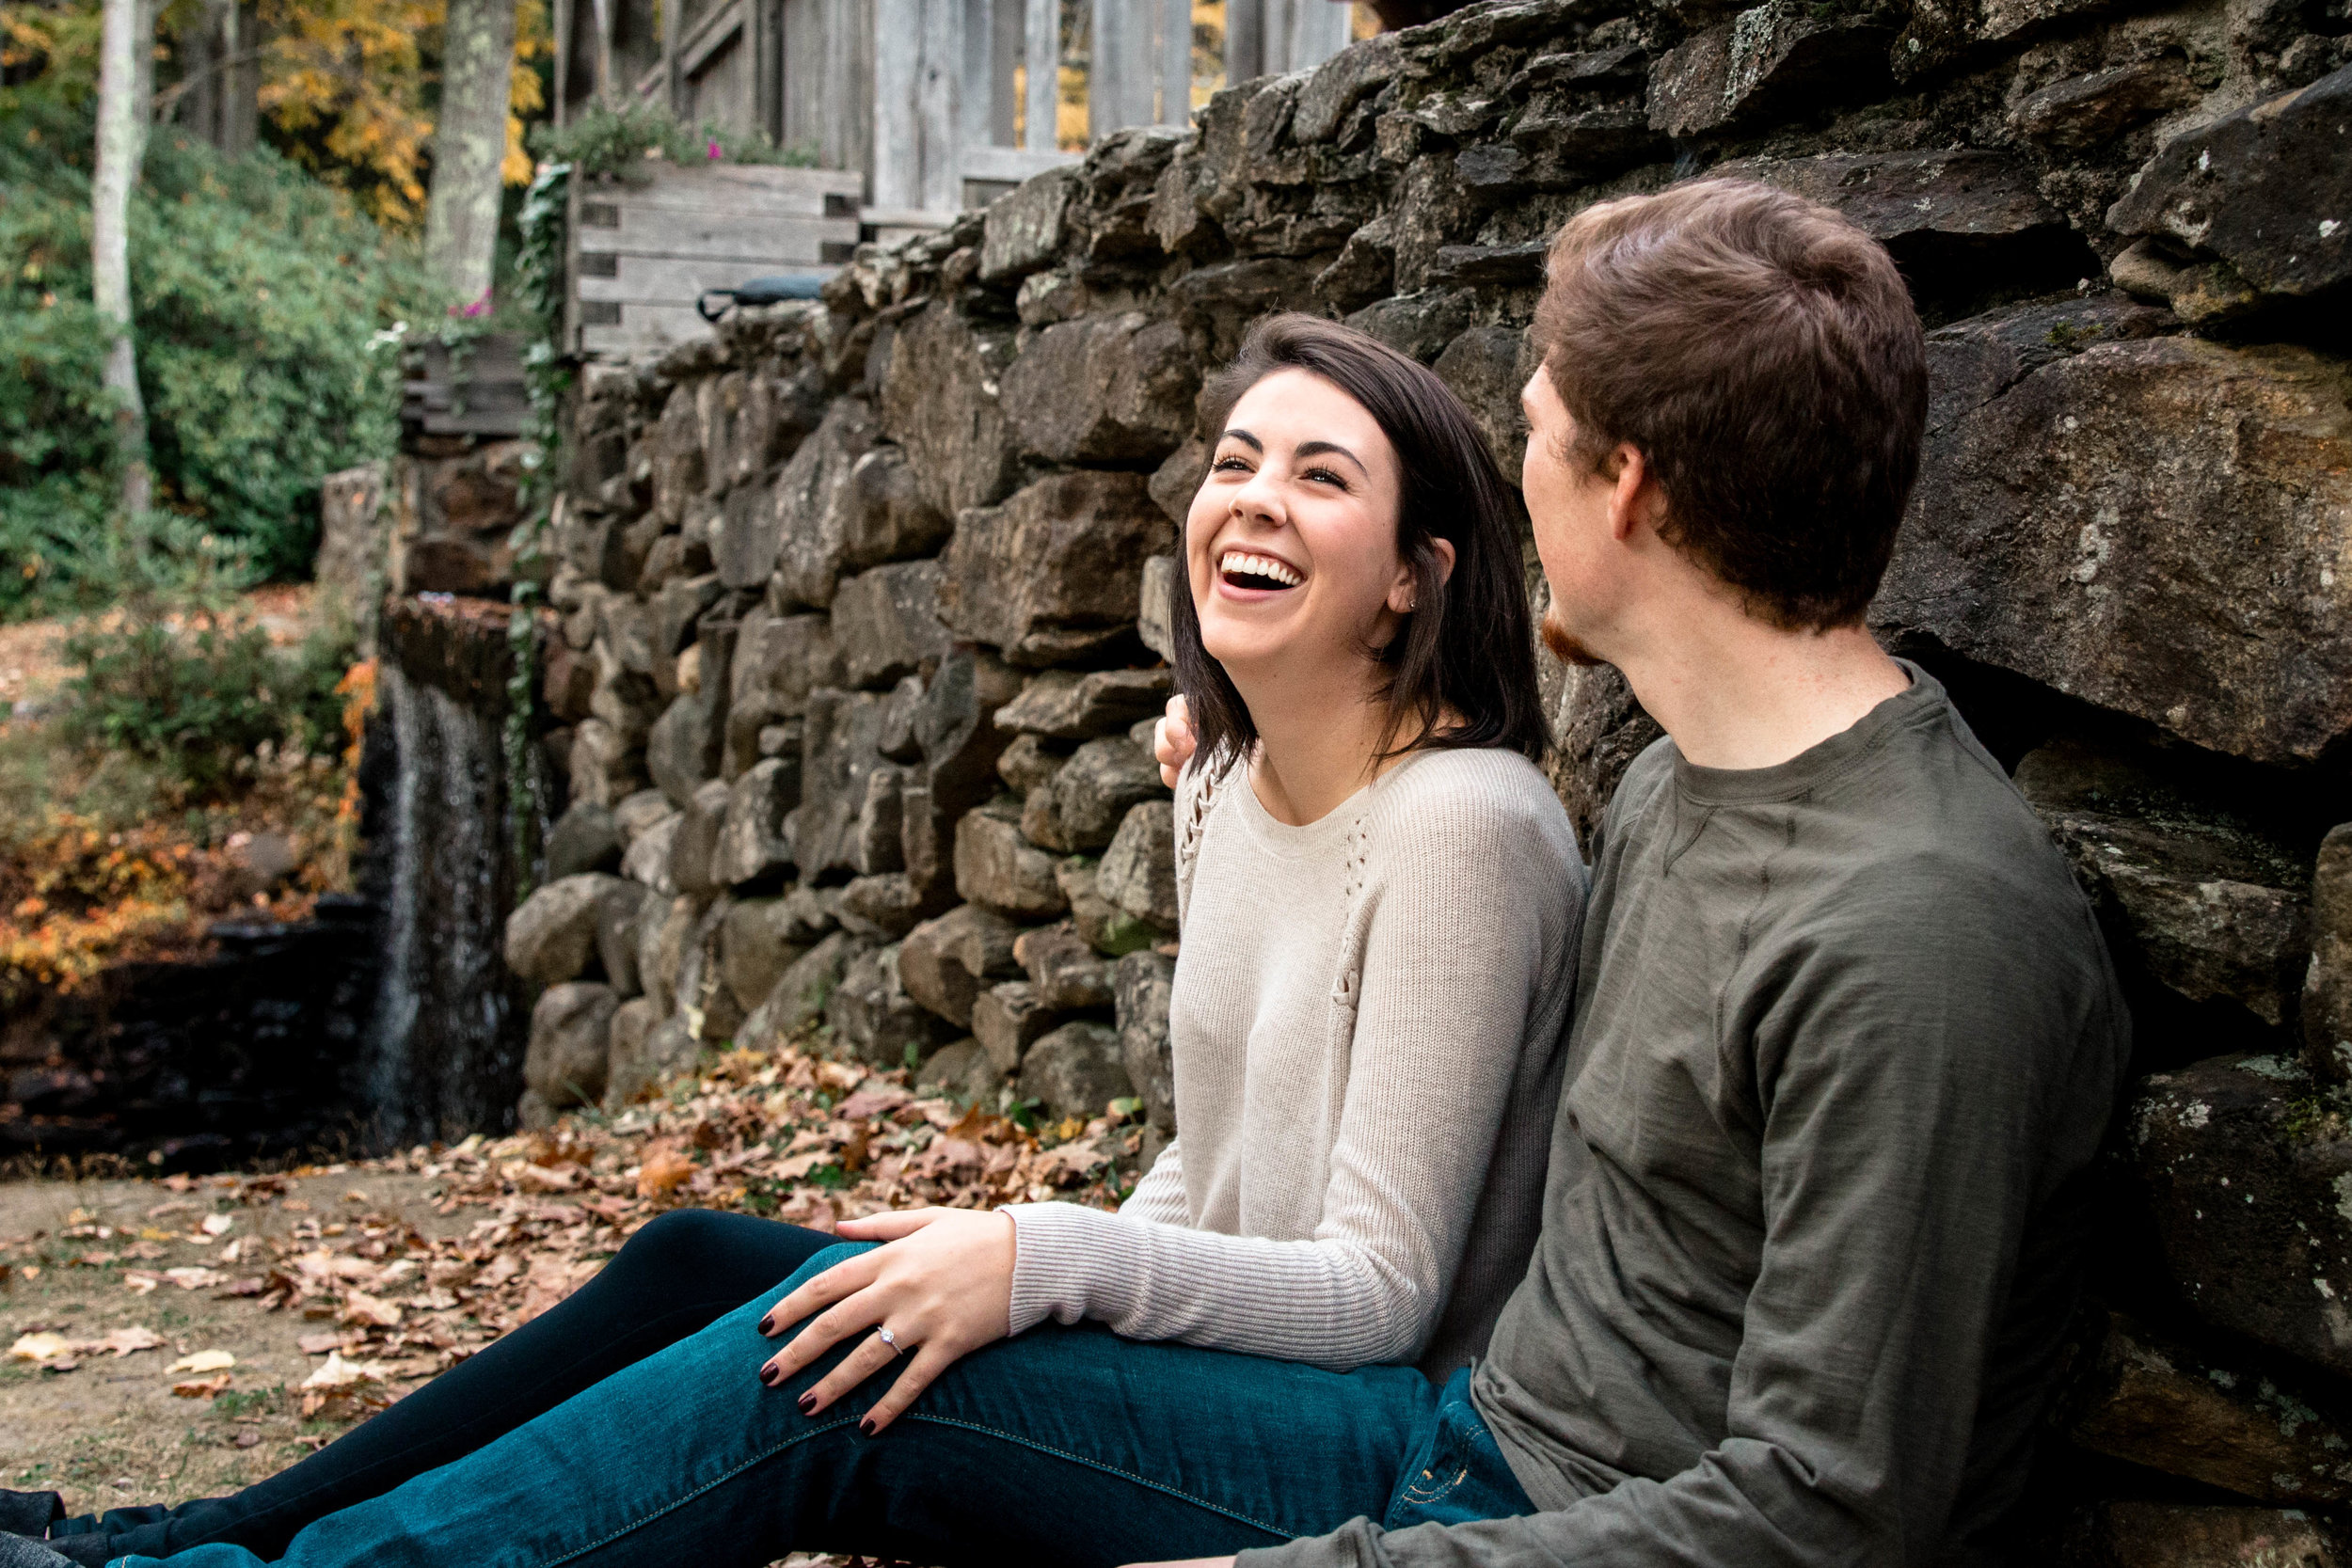 bride-to-be laughing with fiancé against rock wall and fall foliage